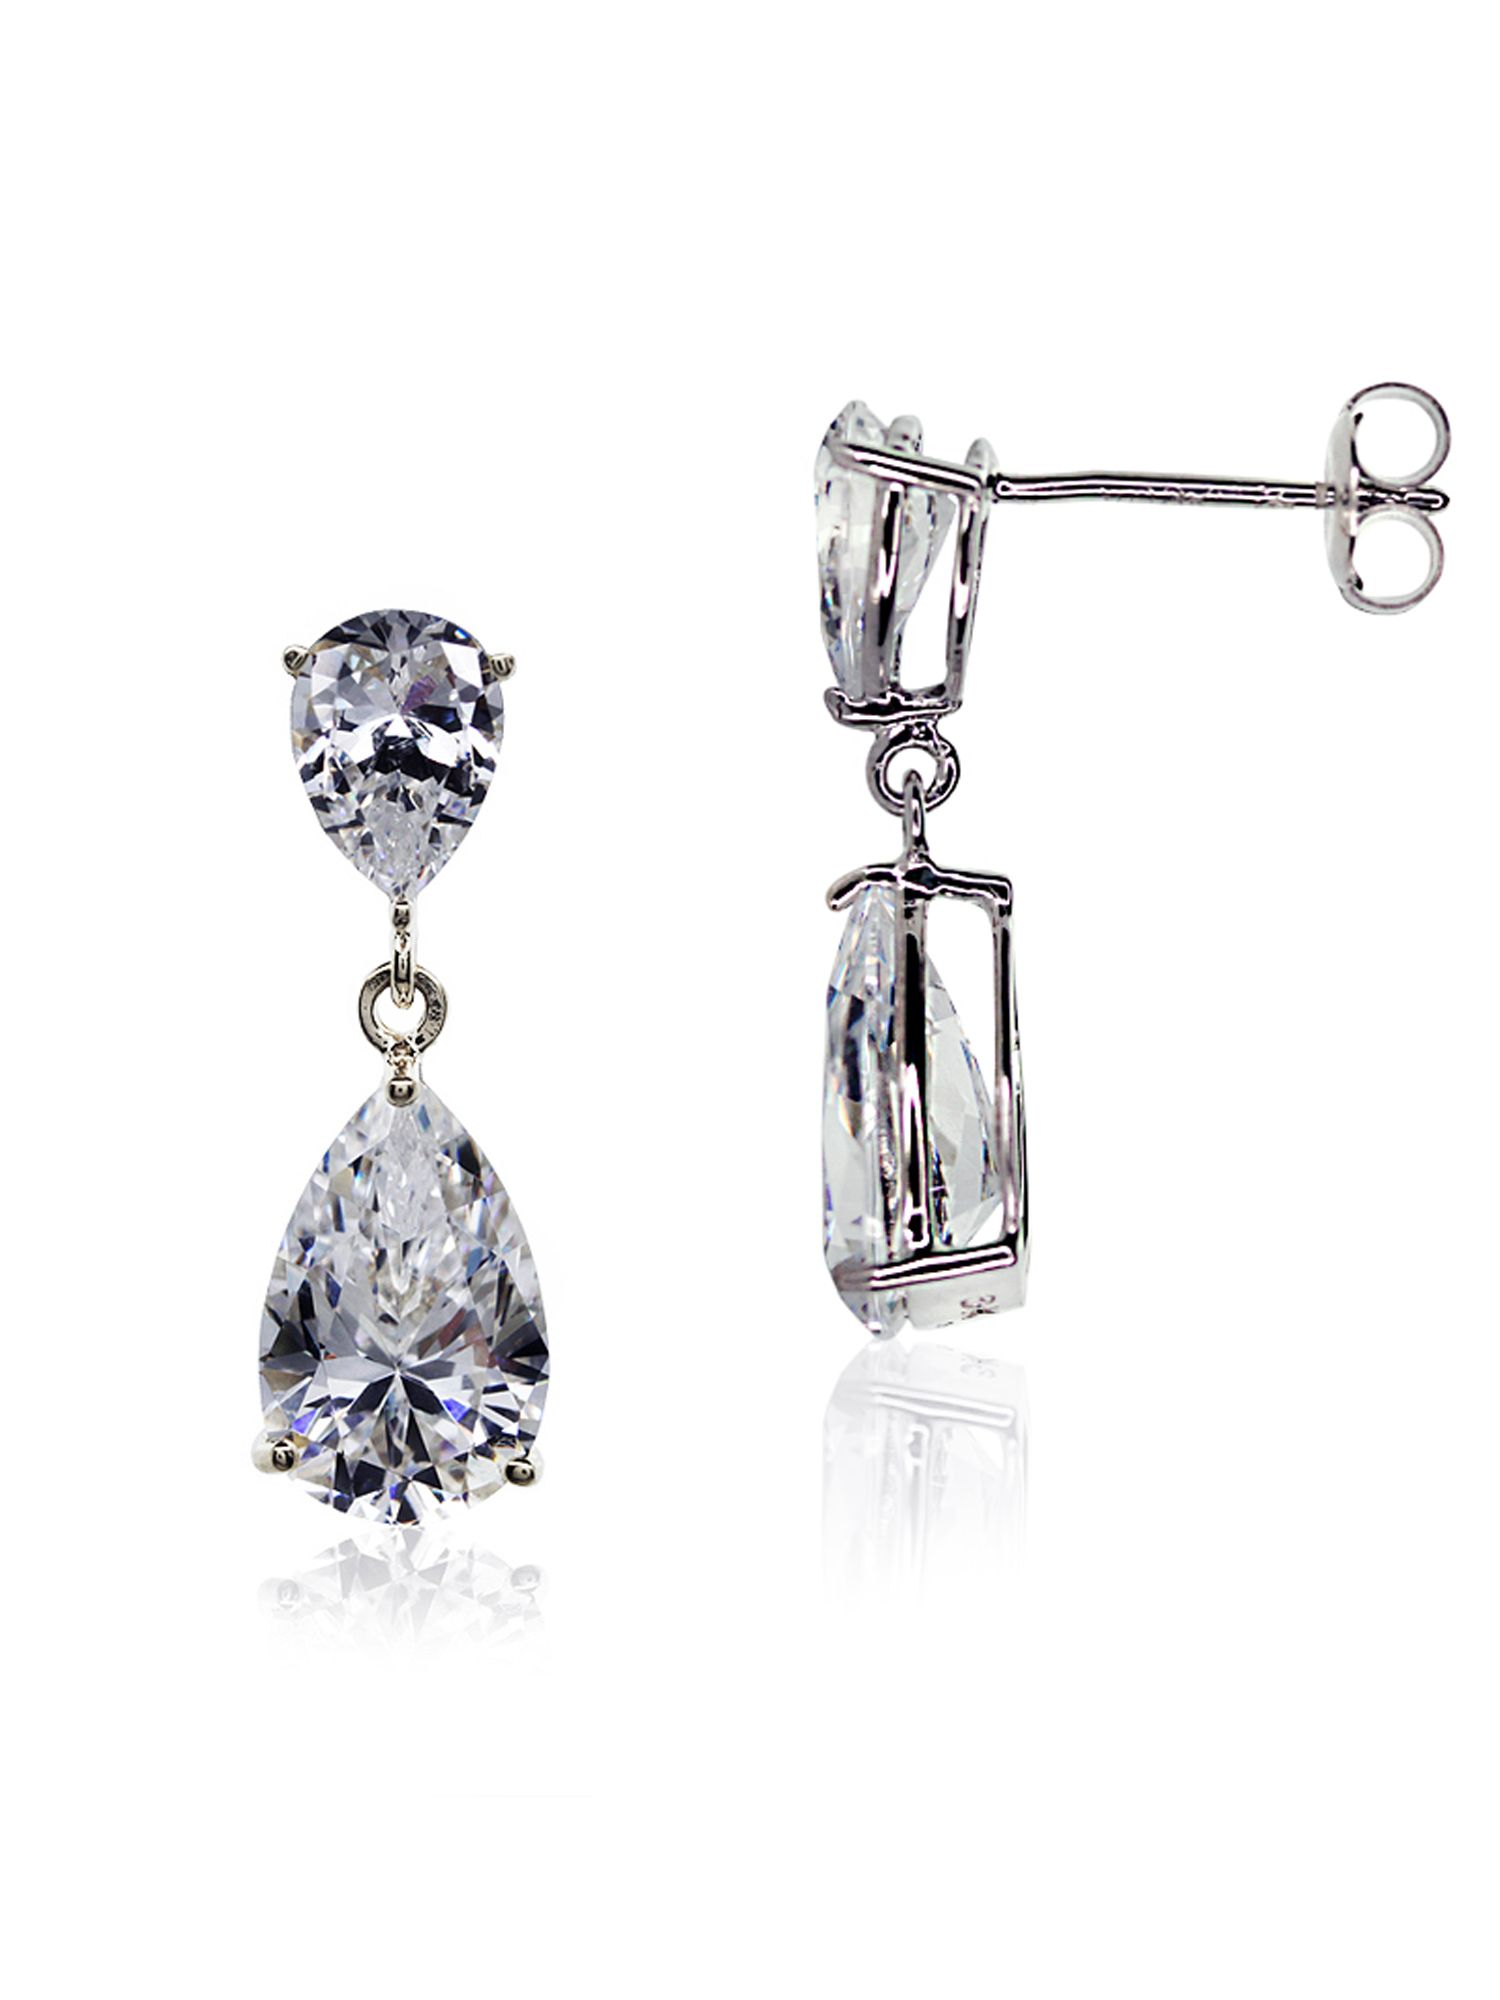 Classy Pear Drop Earrings